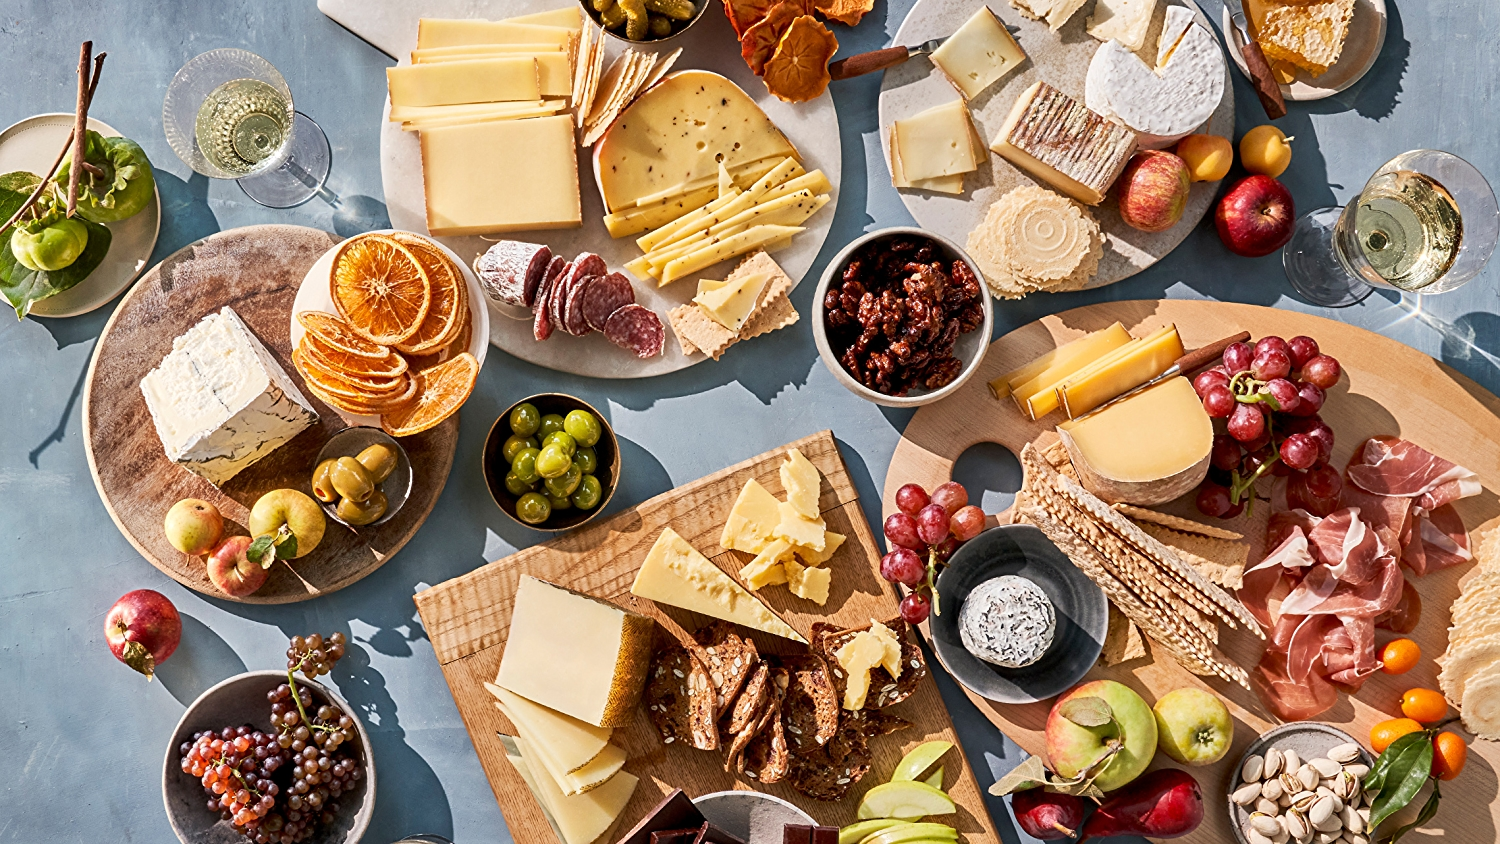 Holiday cheese board with accoutrements and wines